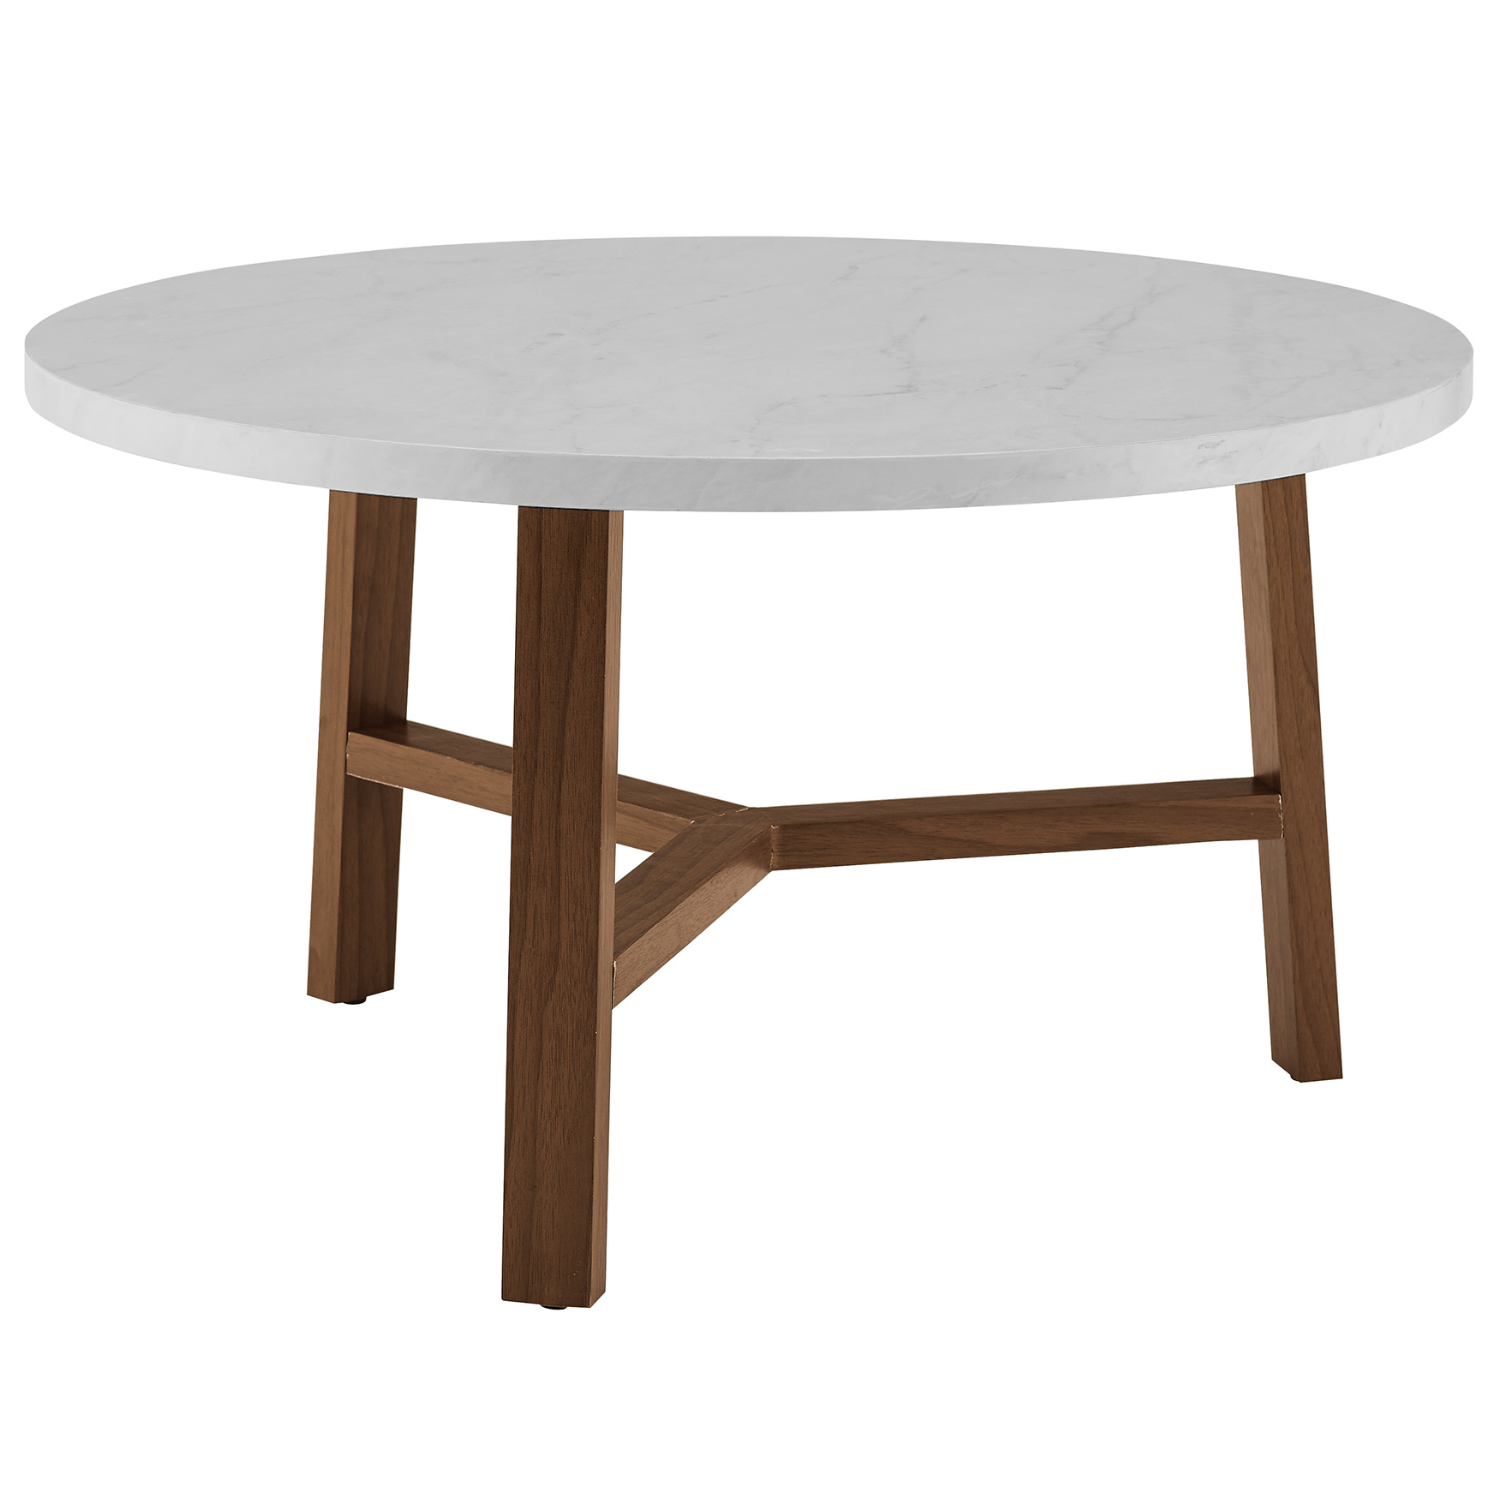 - White Round Faux Marble Coffee Table - Foster Furniture123